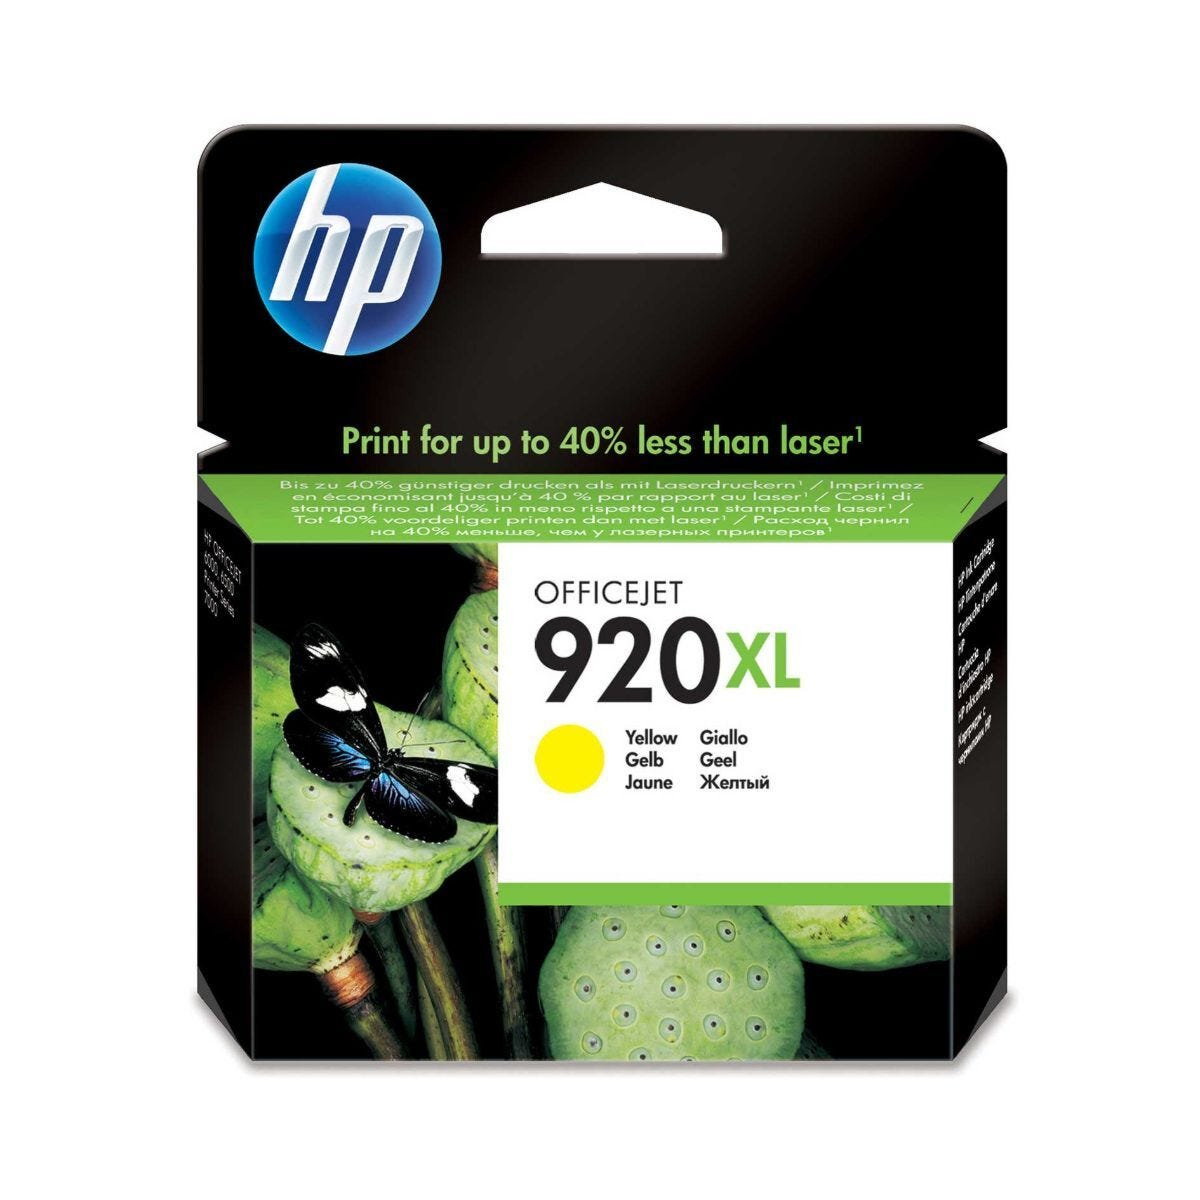 HP 920XL Inkjet Cartridge Yellow